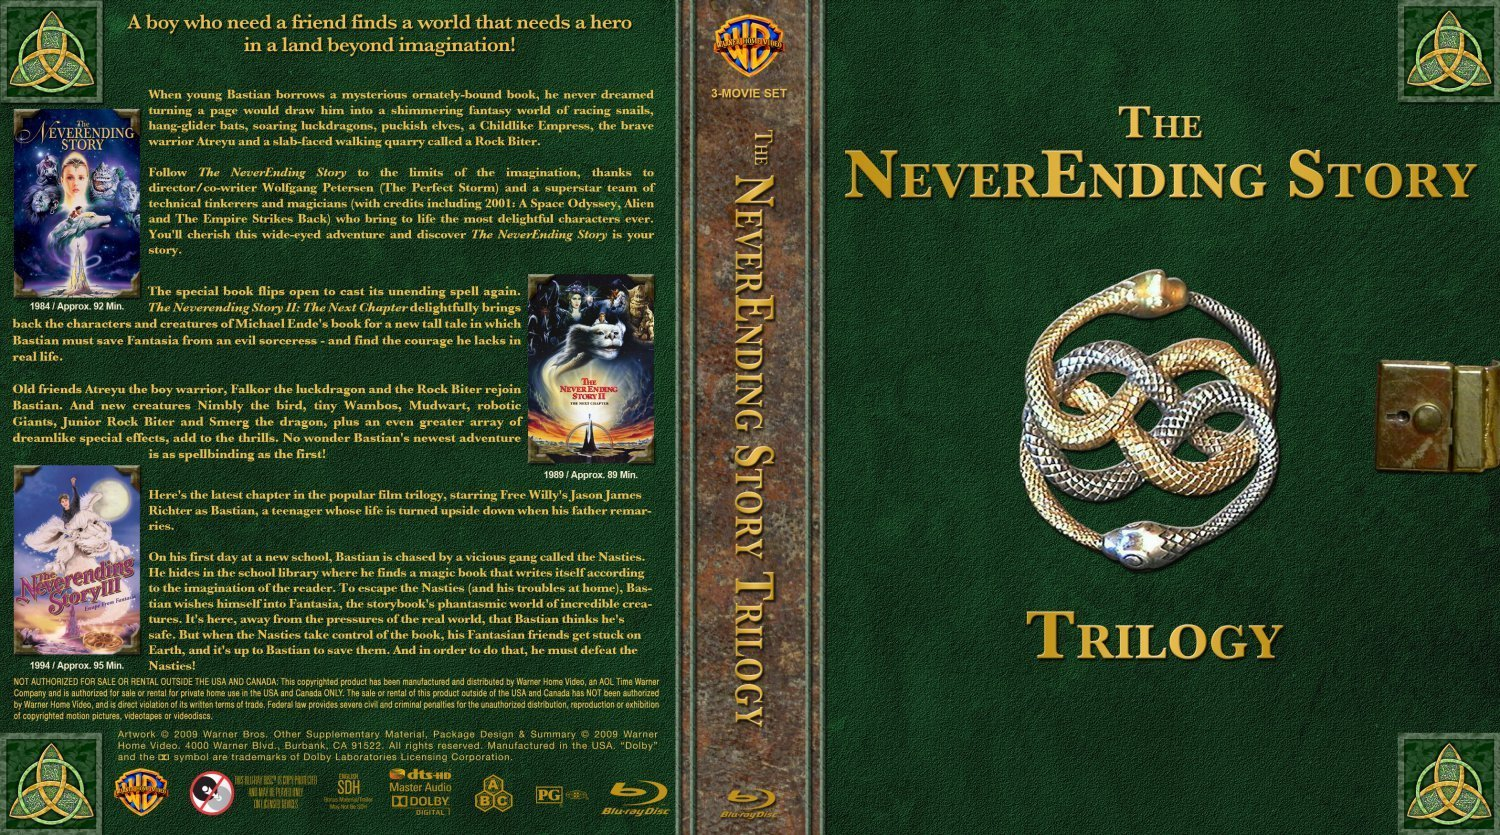 neverending story turning points essay